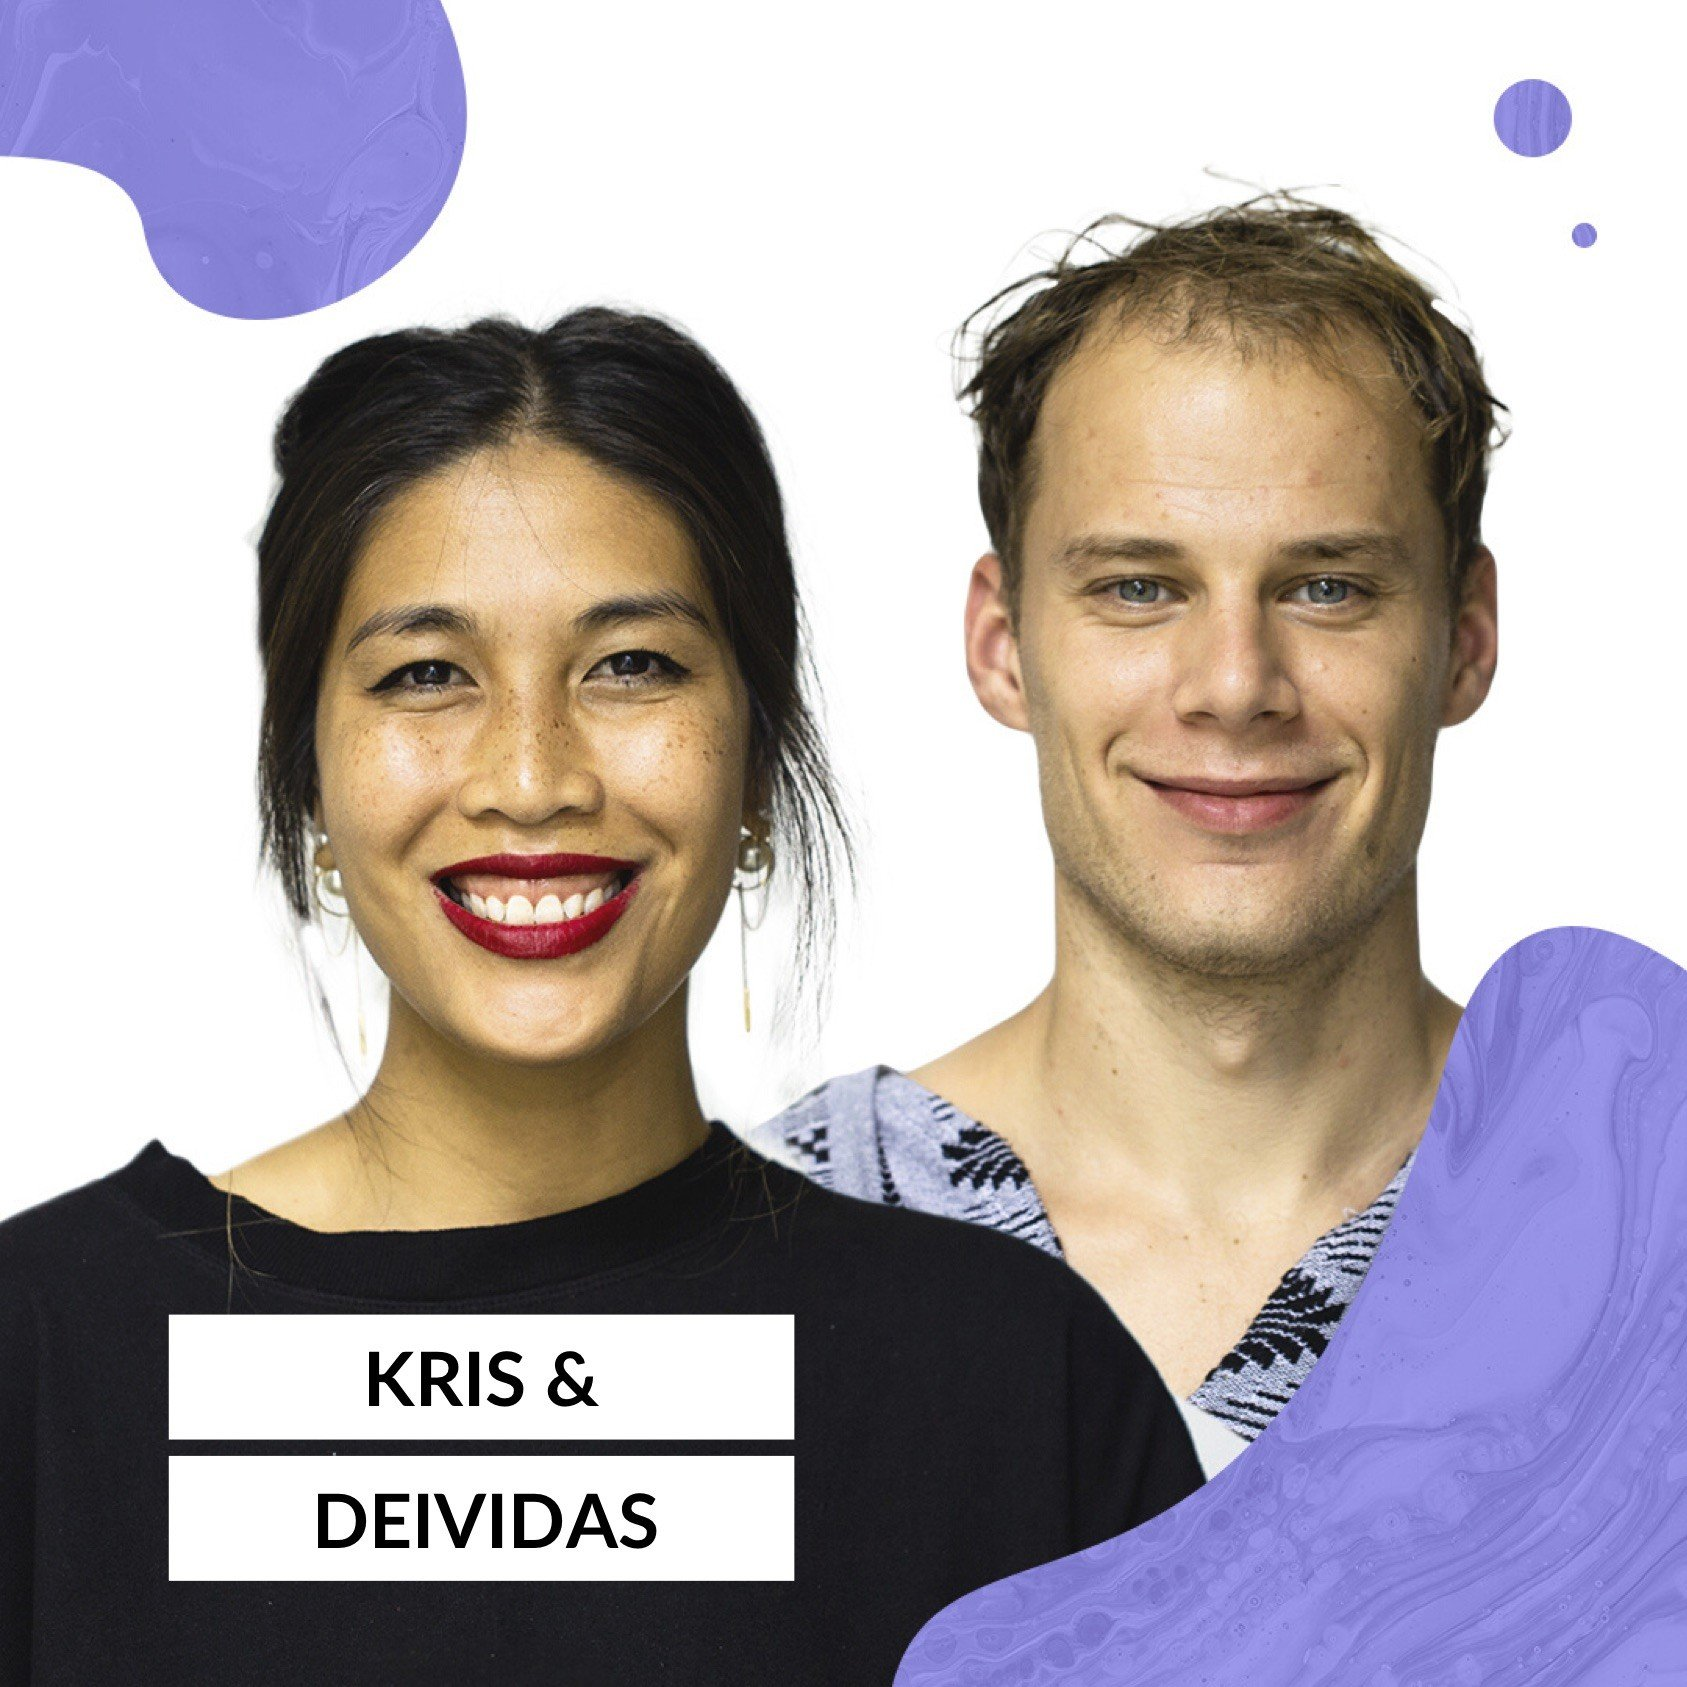 #13 Kris & Deividas – The Top Mistake Every Entrepreneur Makes & How We Learned From It